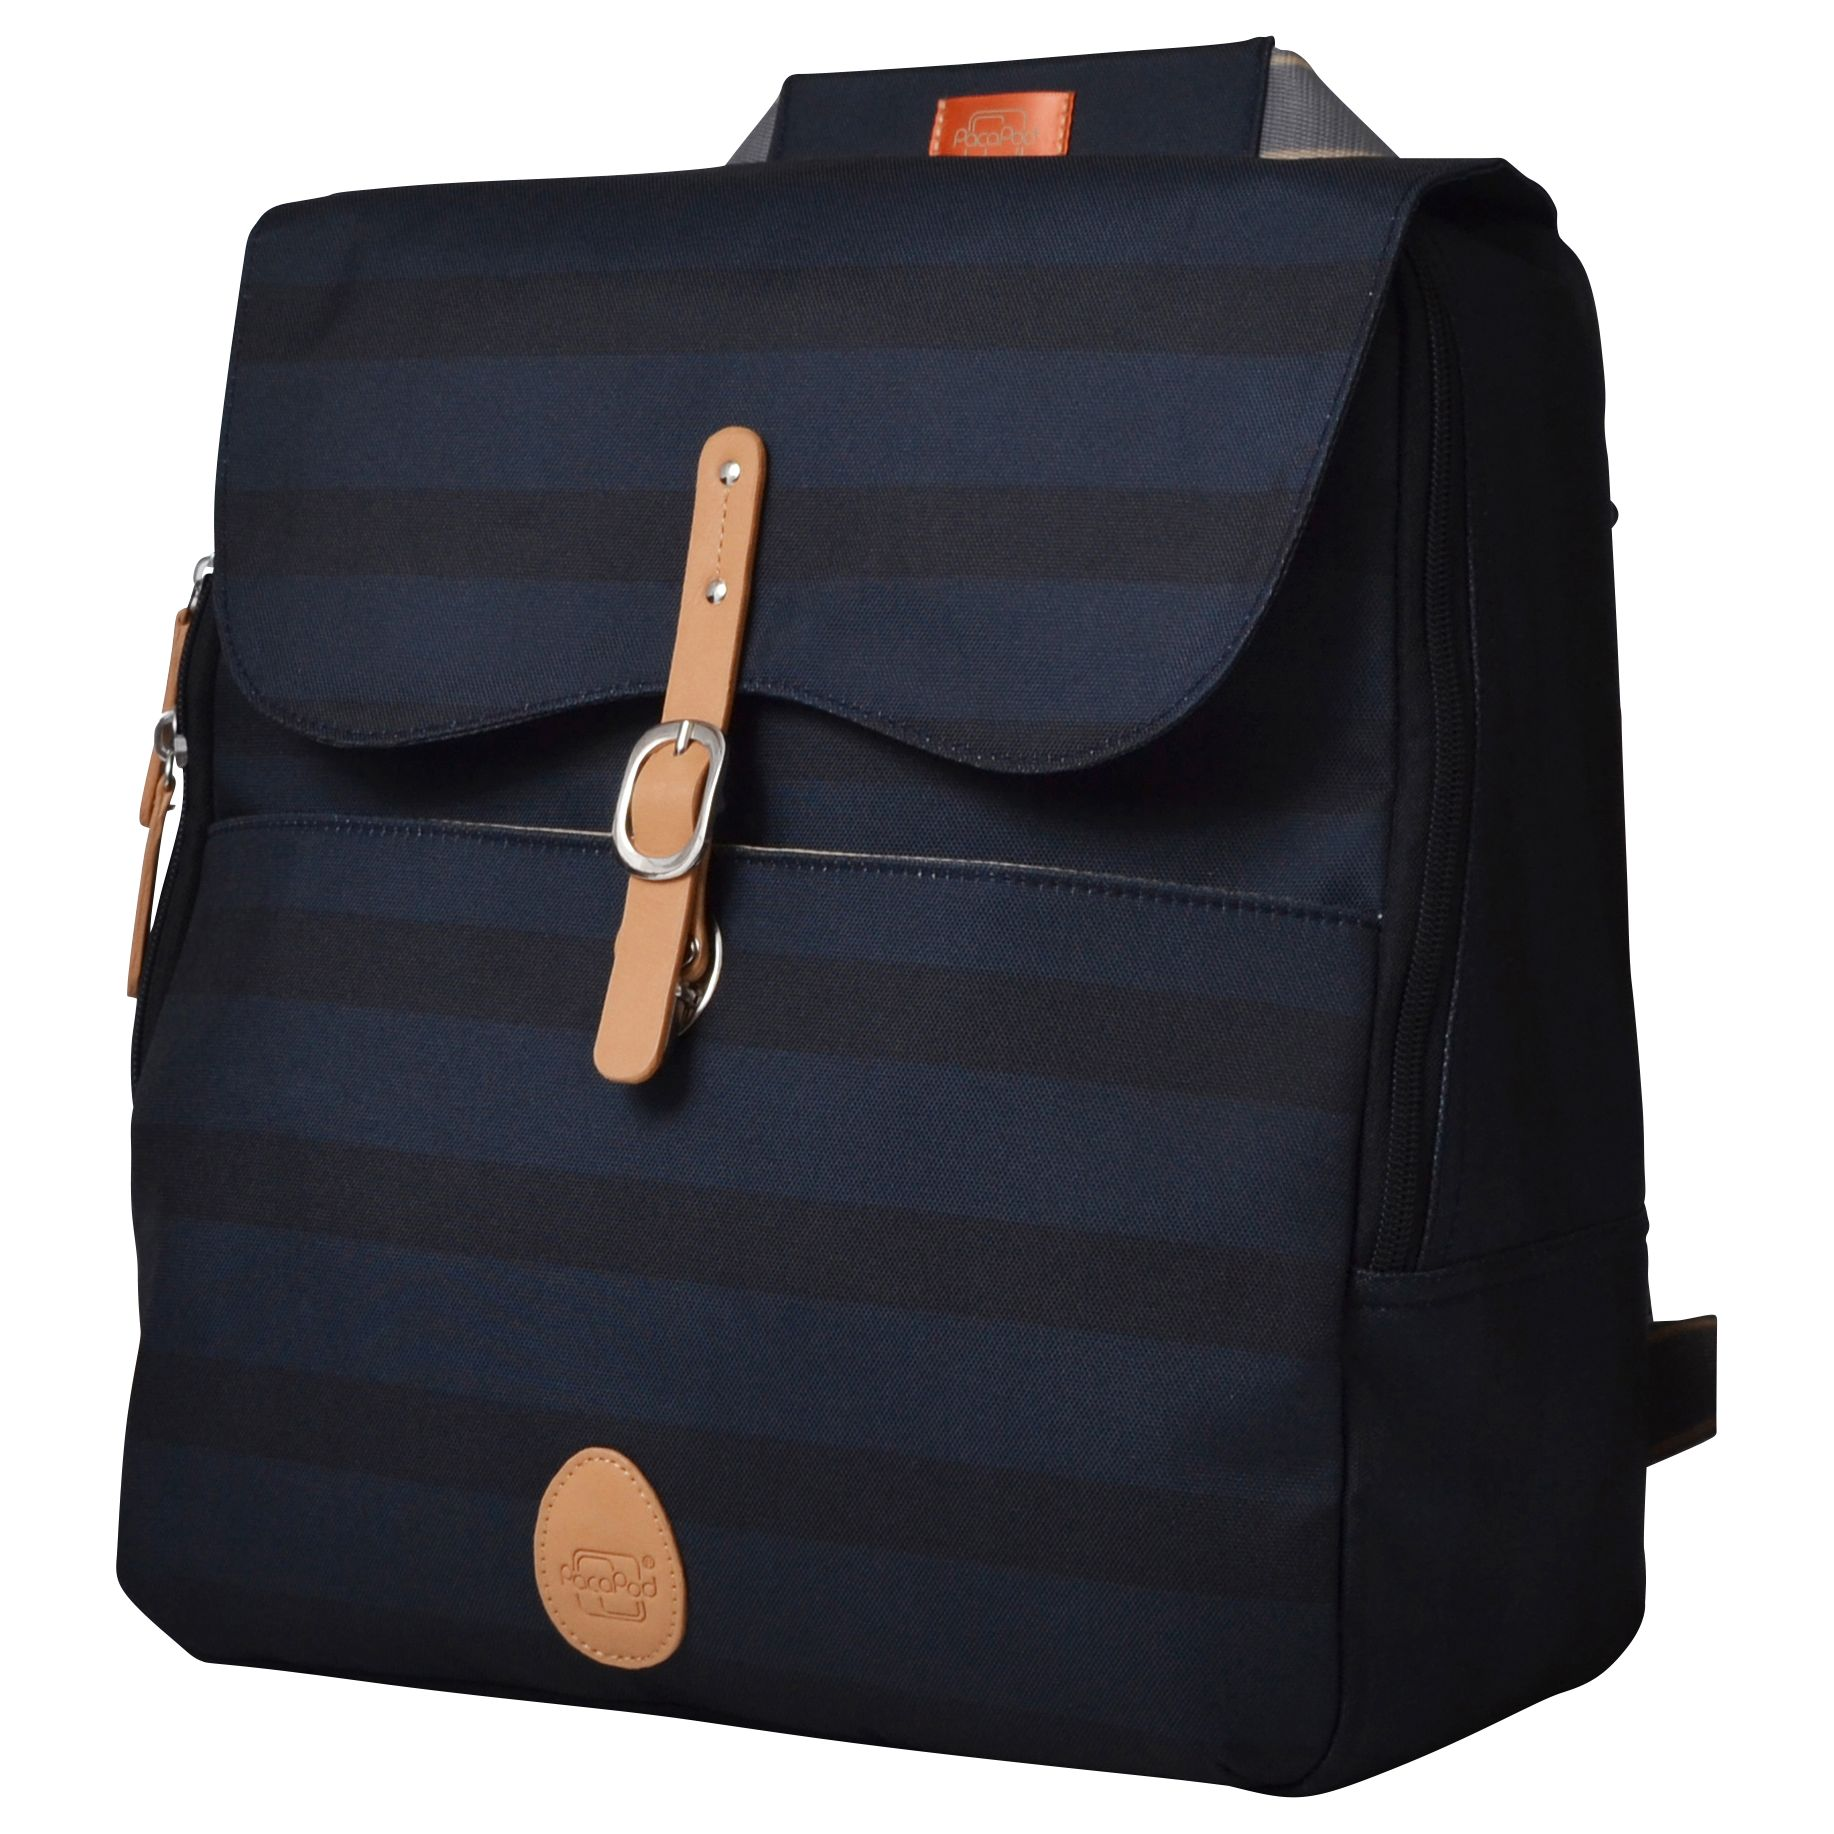 PacaPod PacaPod Hastings Ink Stripe Changing Bag, Navy